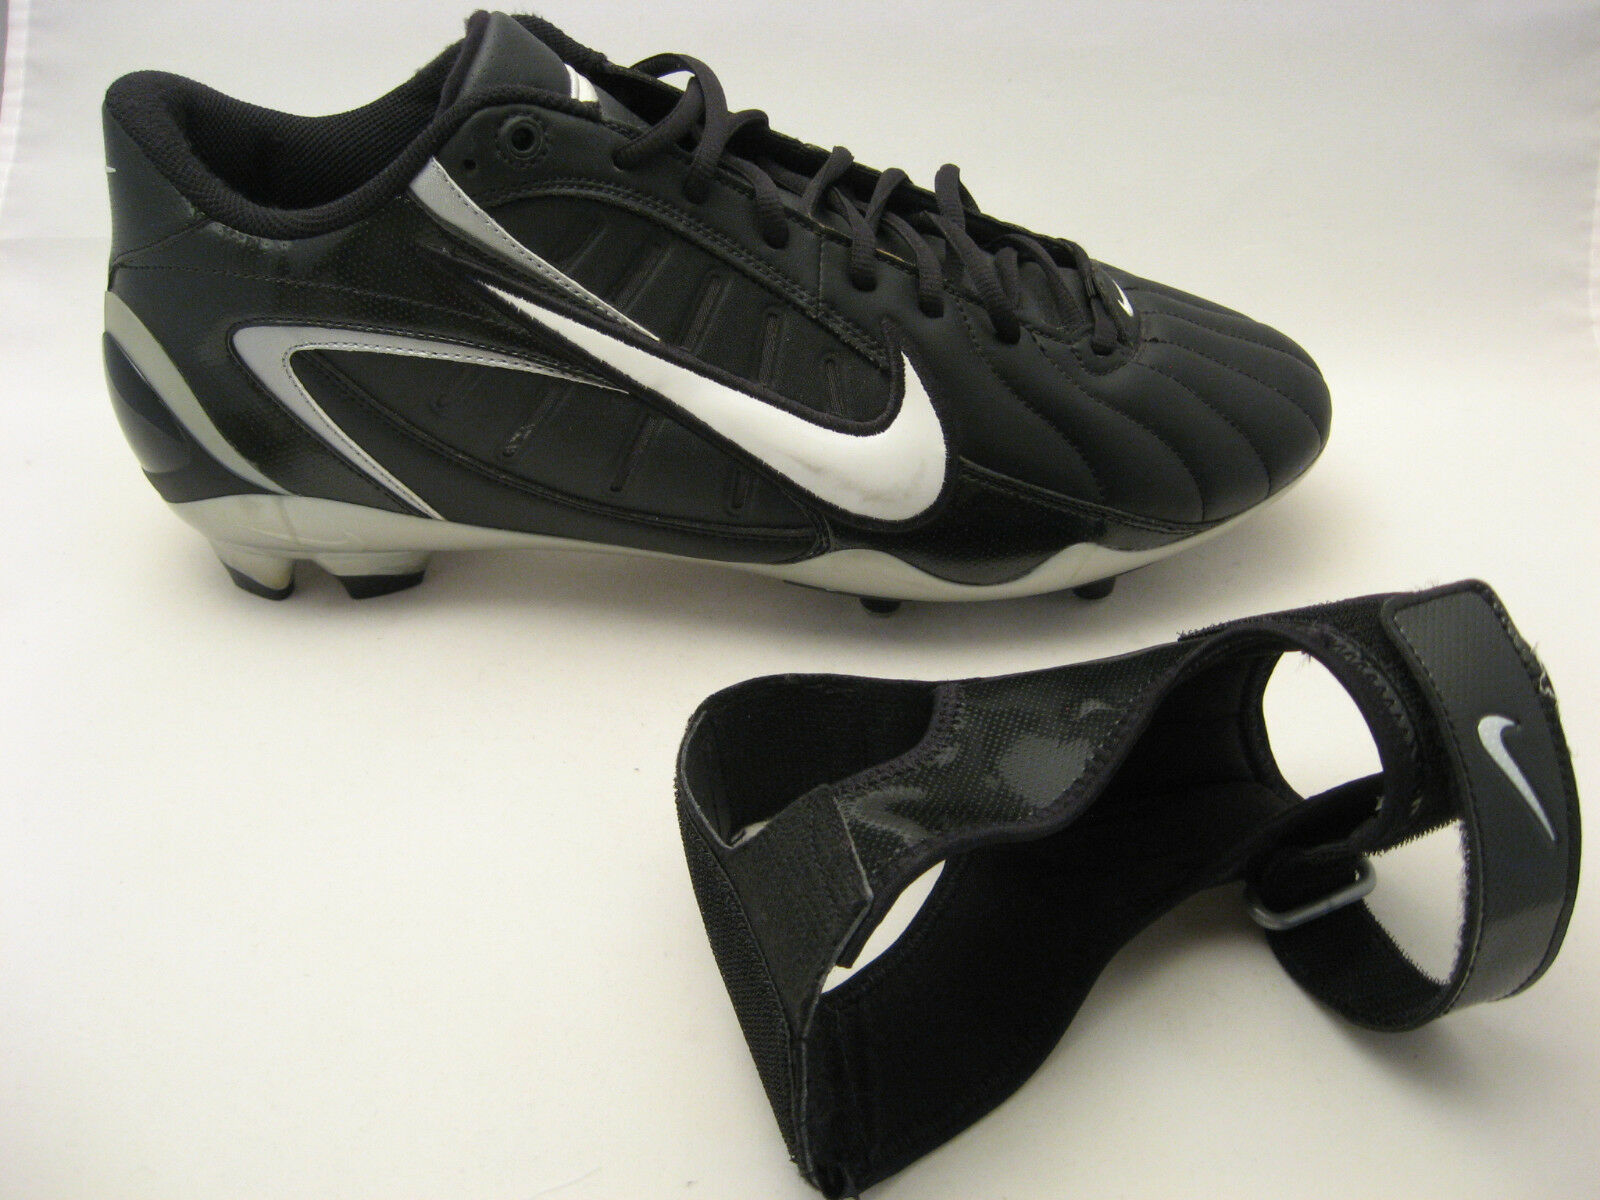 Nike Mens Air Zoom Super Bad Football Cleats 15 Black Removable Ankle Support